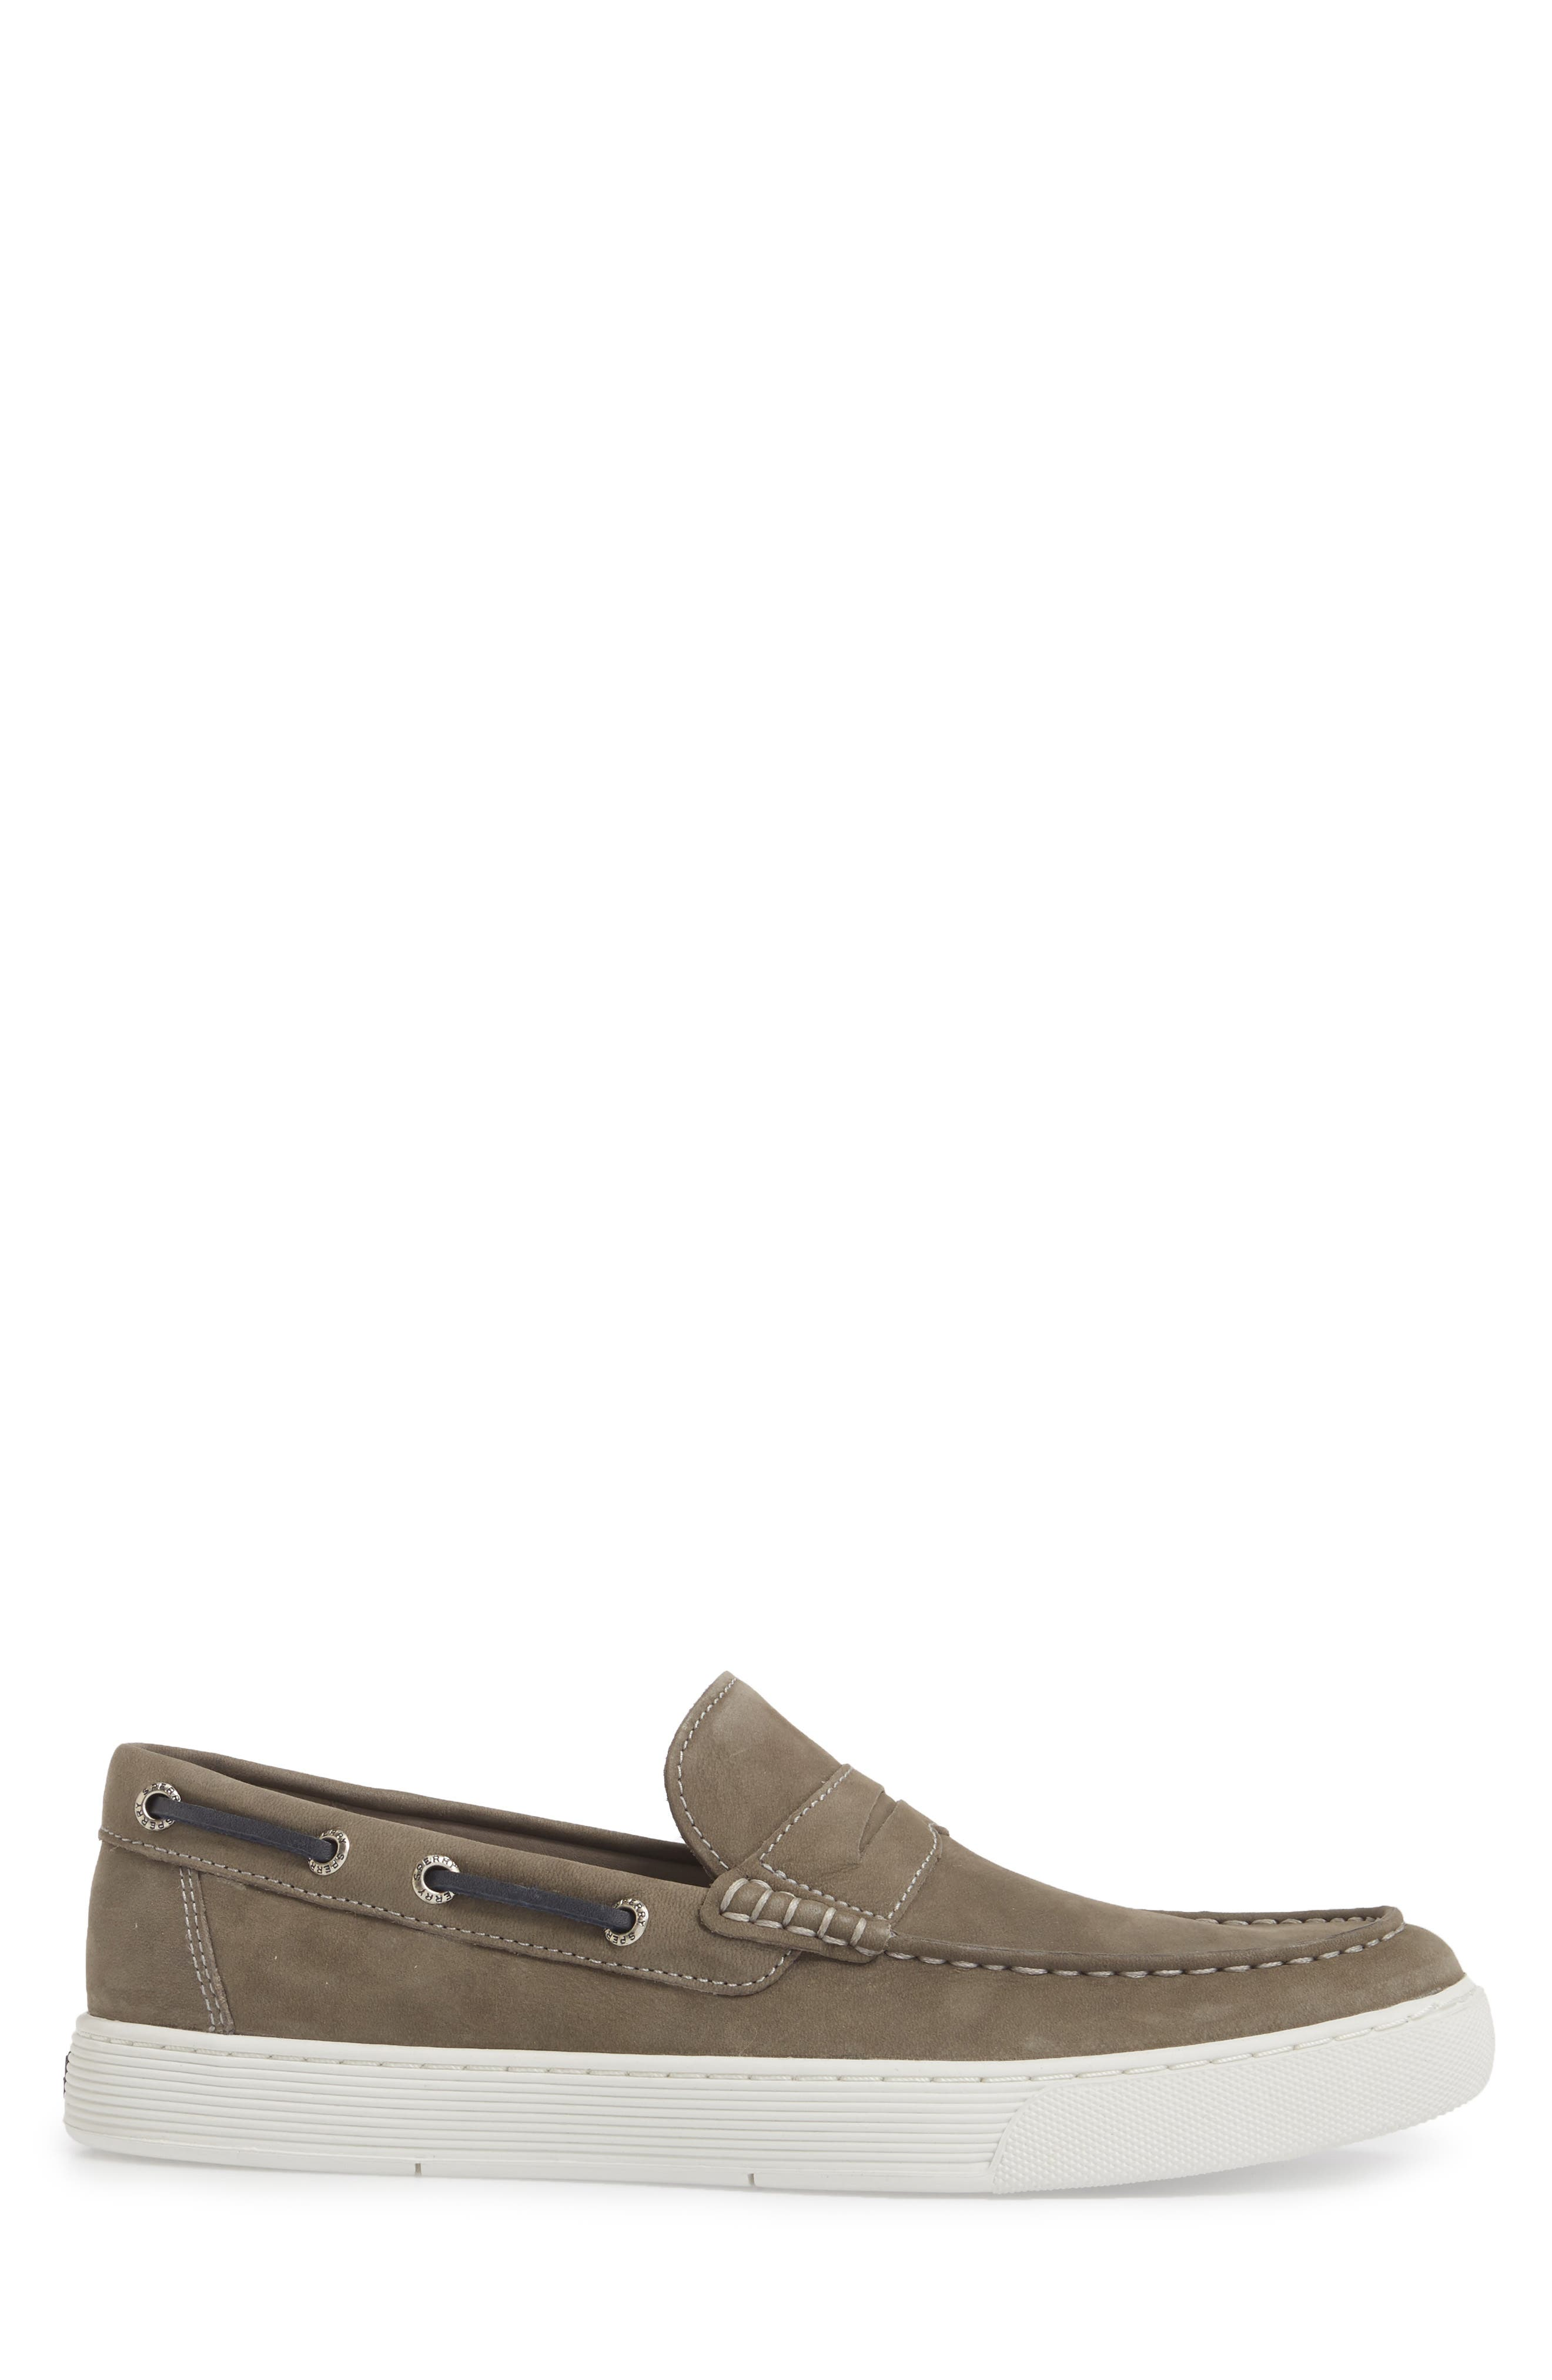 Gold Cup Penny Loafer,                             Alternate thumbnail 3, color,                             020